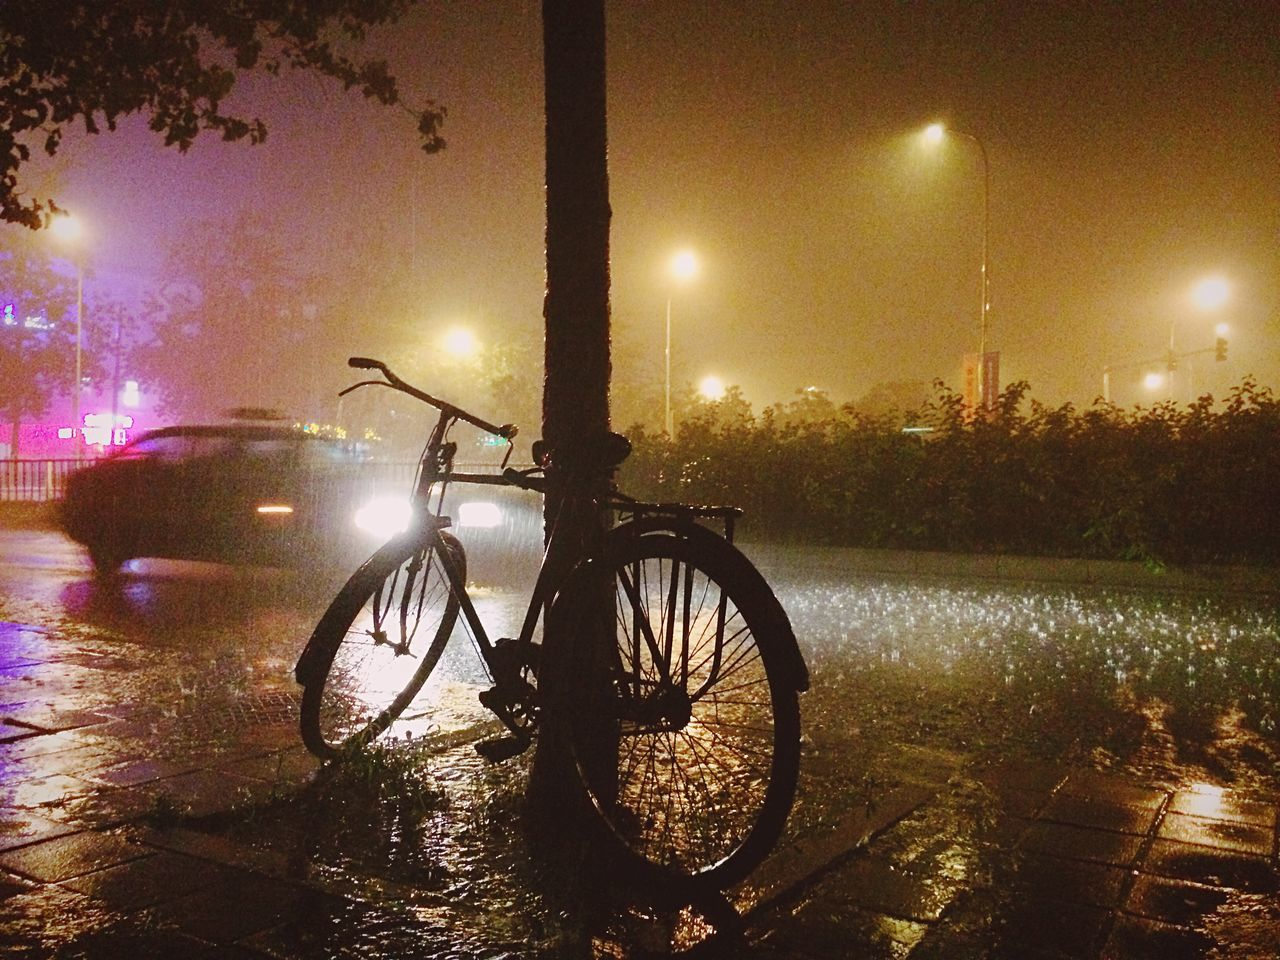 Bicycle parked by tree at night during rainy season